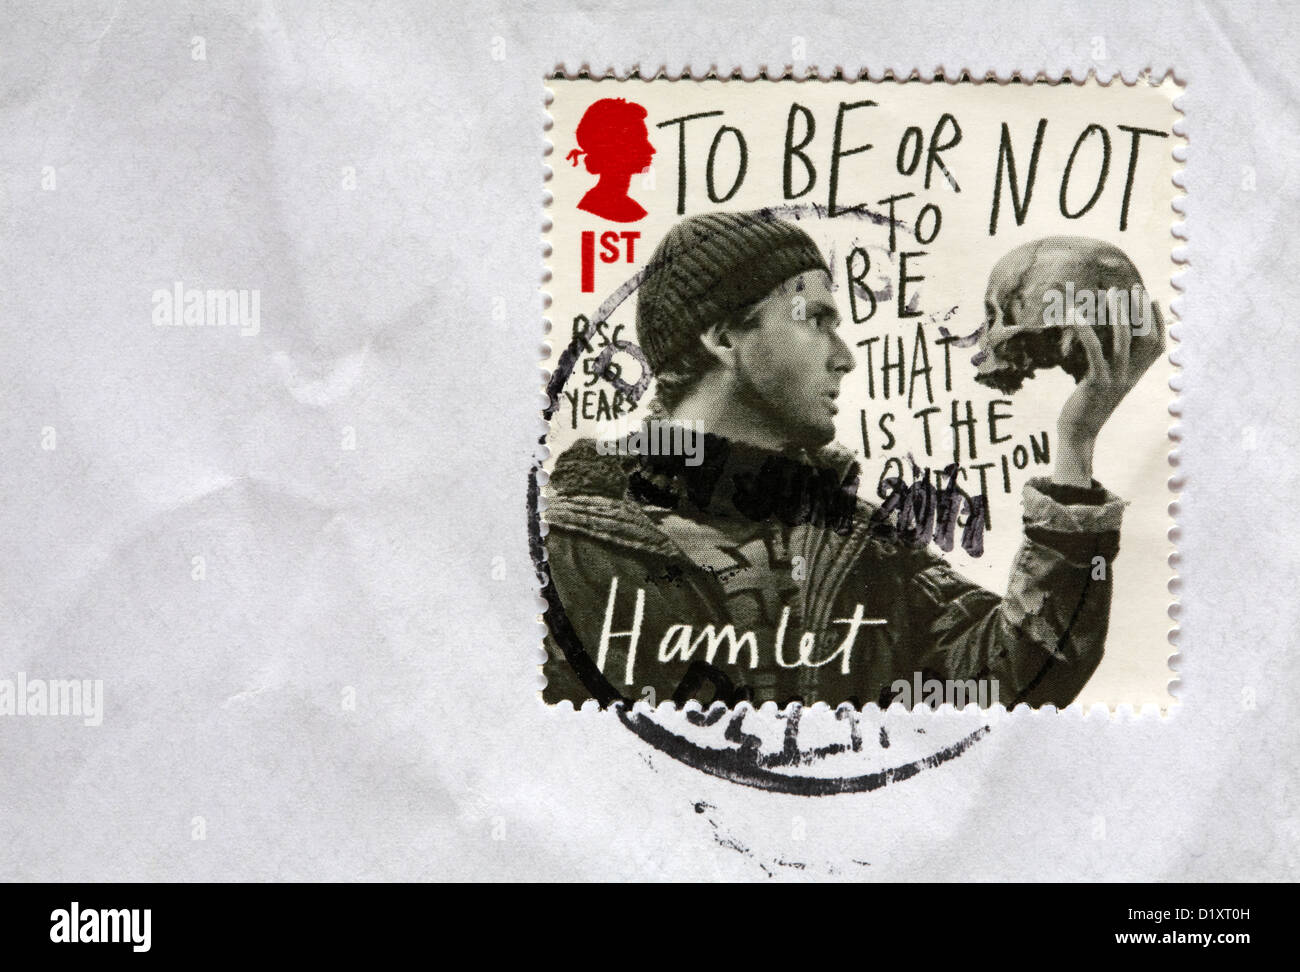 1st class stamp commemorating RSC 50 years - to be or not to be that is the question Hamlet stuck on white envelope - Stock Image